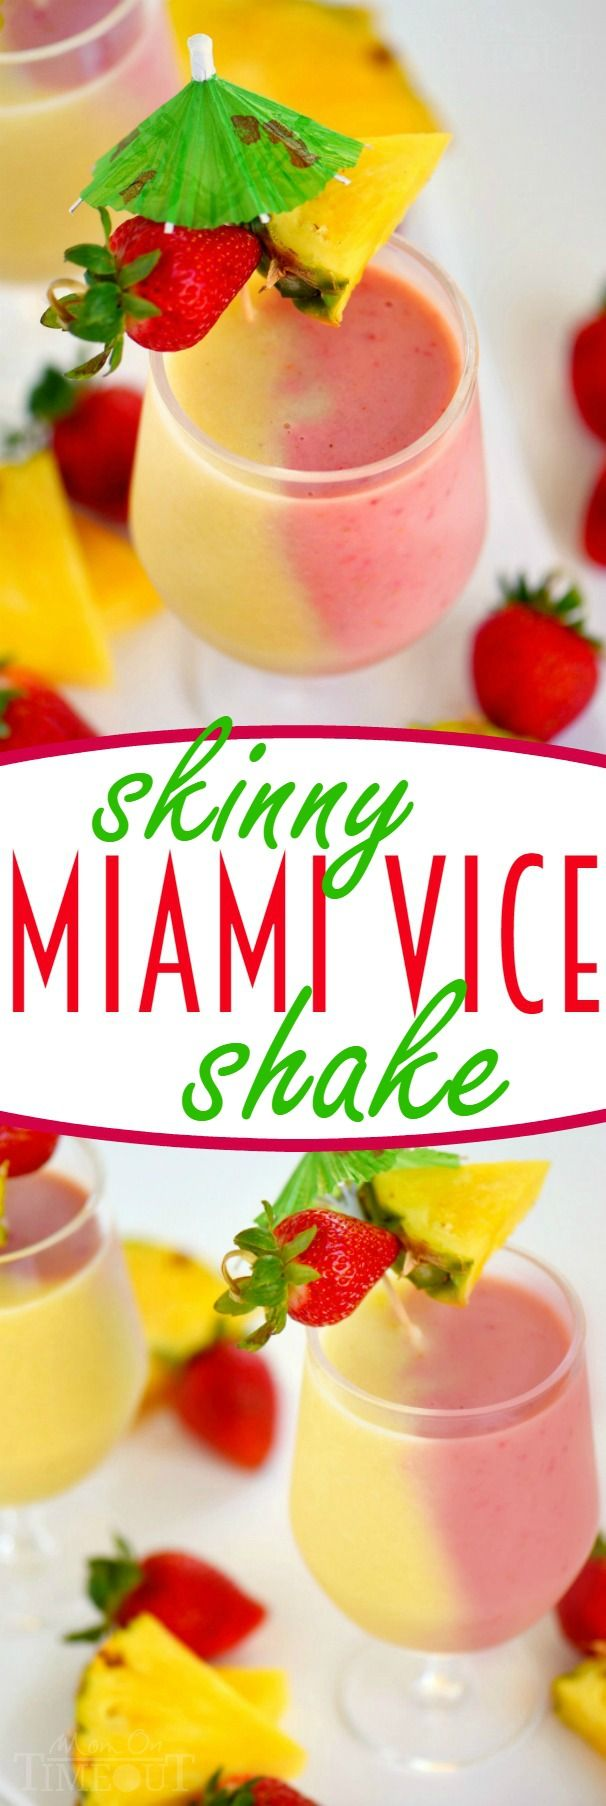 When the weather gets hot, turn to this Skinny Miami Vice Shake to cool off! And because you know your kids are going to want in on the action - I've included a kid-friendly version too!